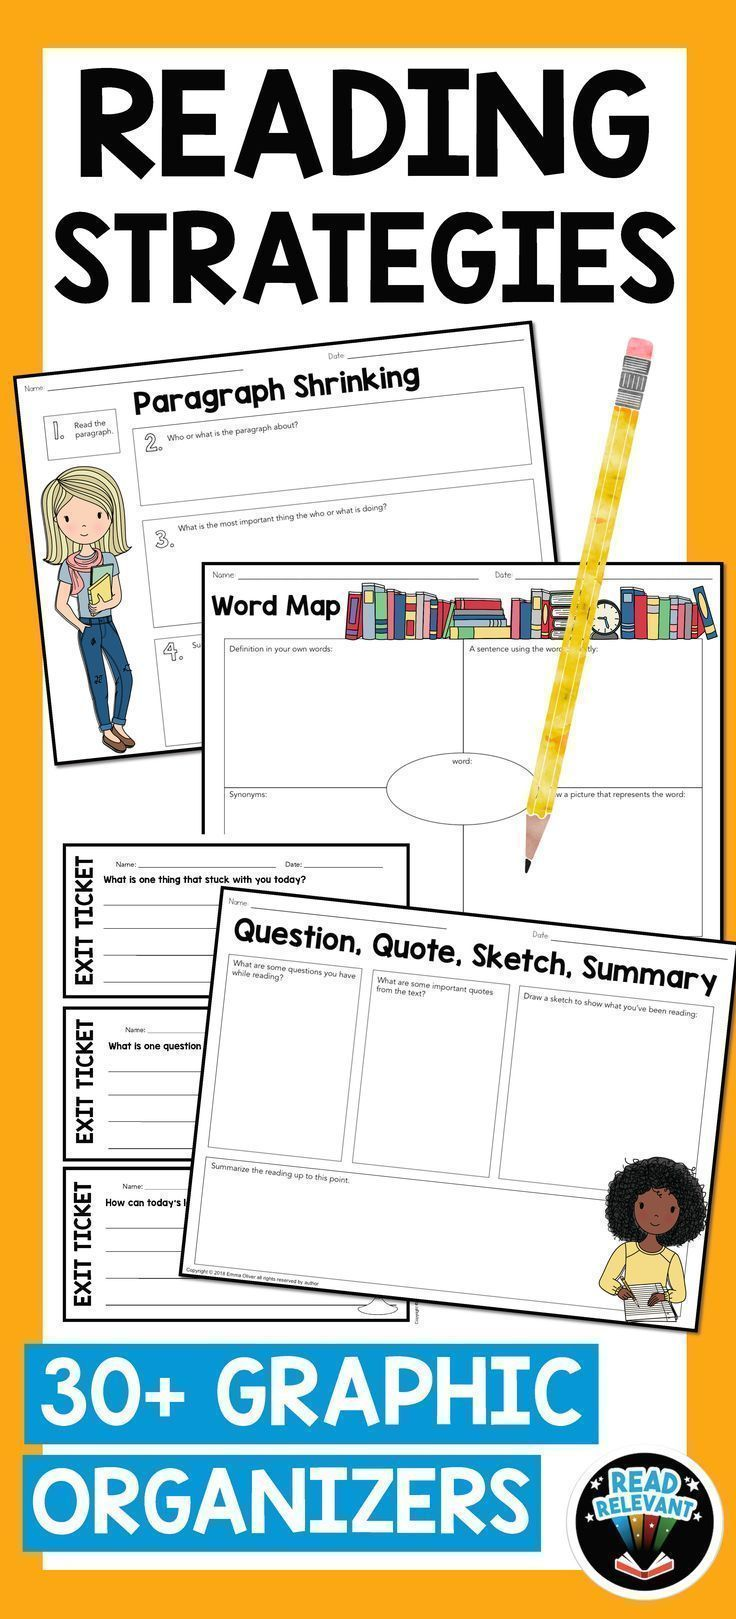 Graphic Organizers For Reading Comprehension 30 Organizers Reading Strategies Reading Strategies Reading Comprehension Graphic Organizers Reading Comprehension [ 1619 x 736 Pixel ]